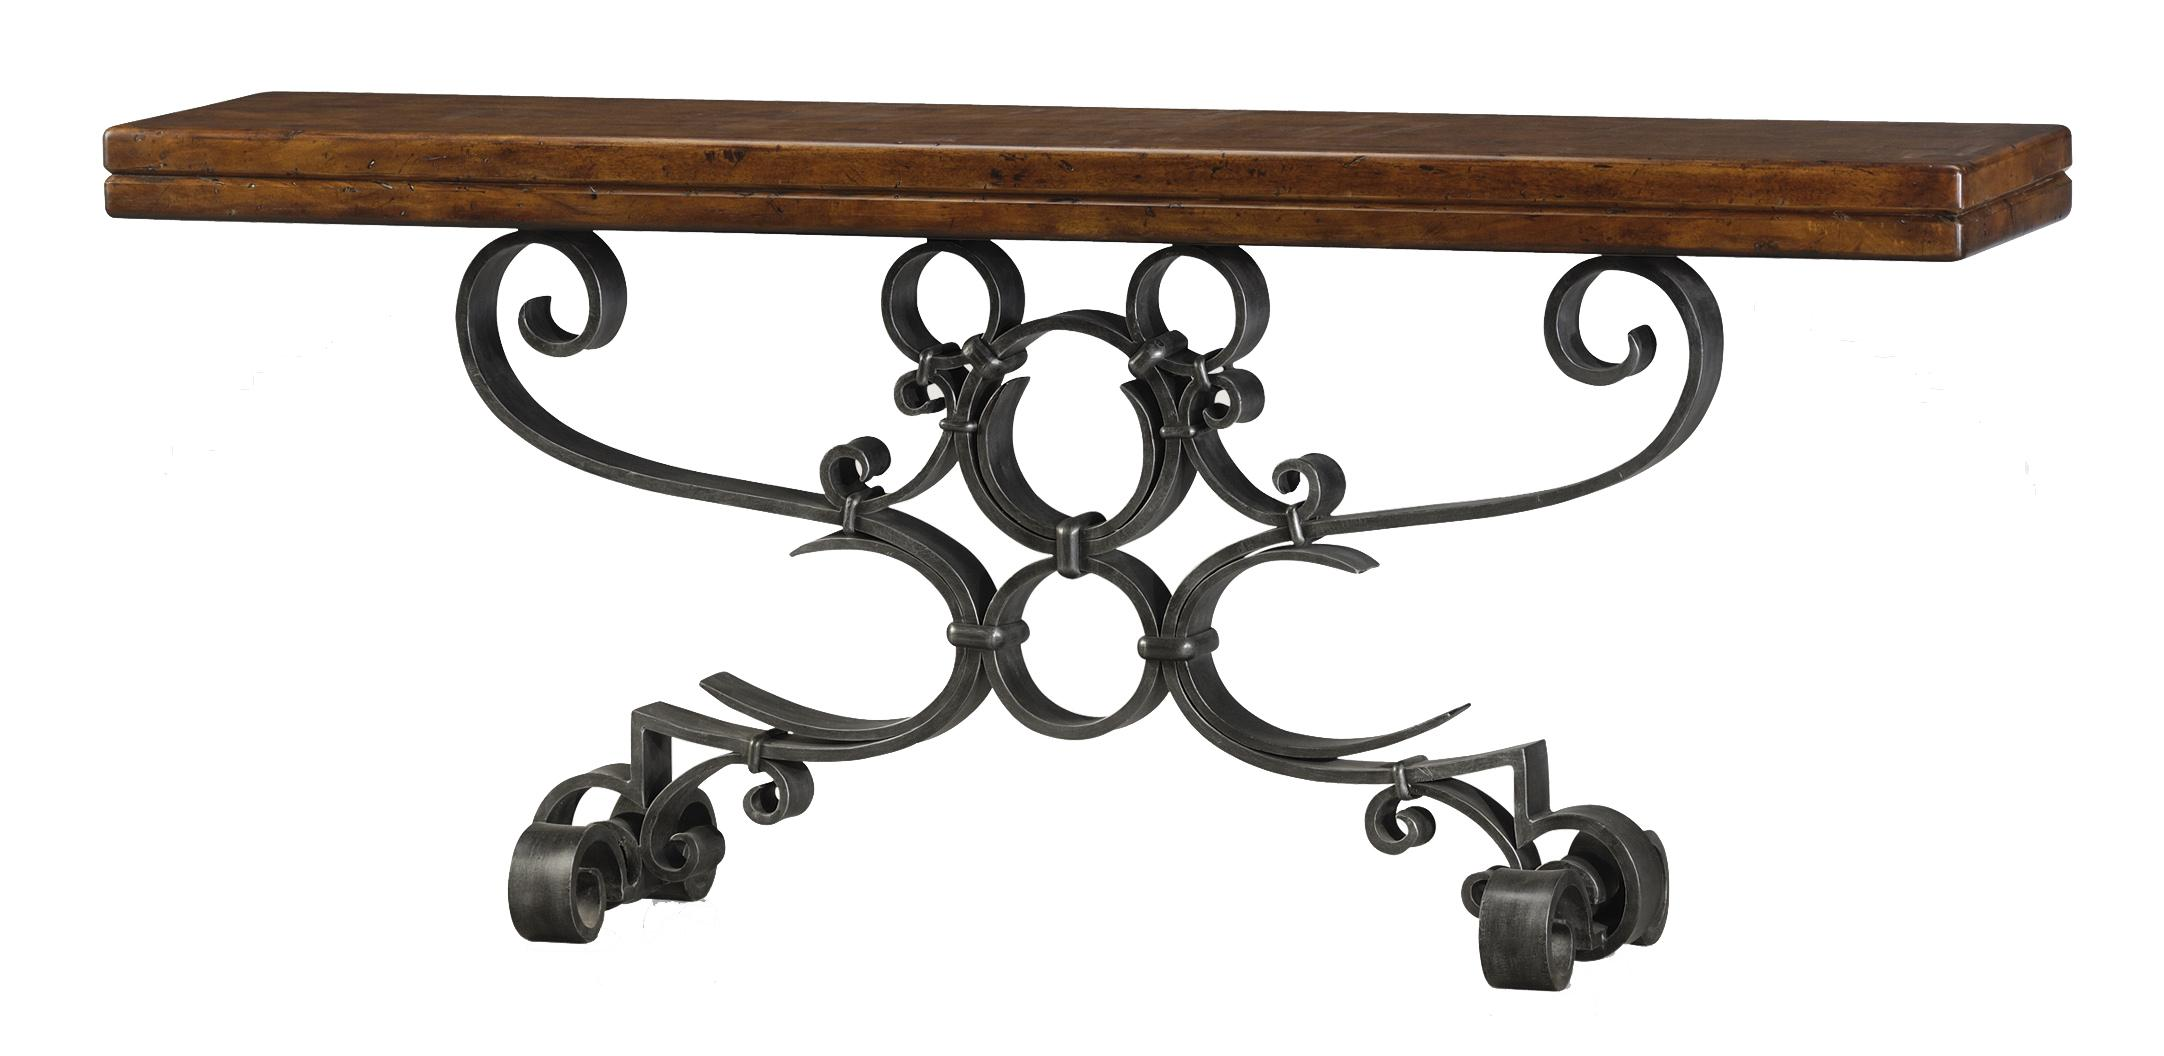 Classic yet Casual Iron Console Table by Theodore Alexander at Baer's Furniture